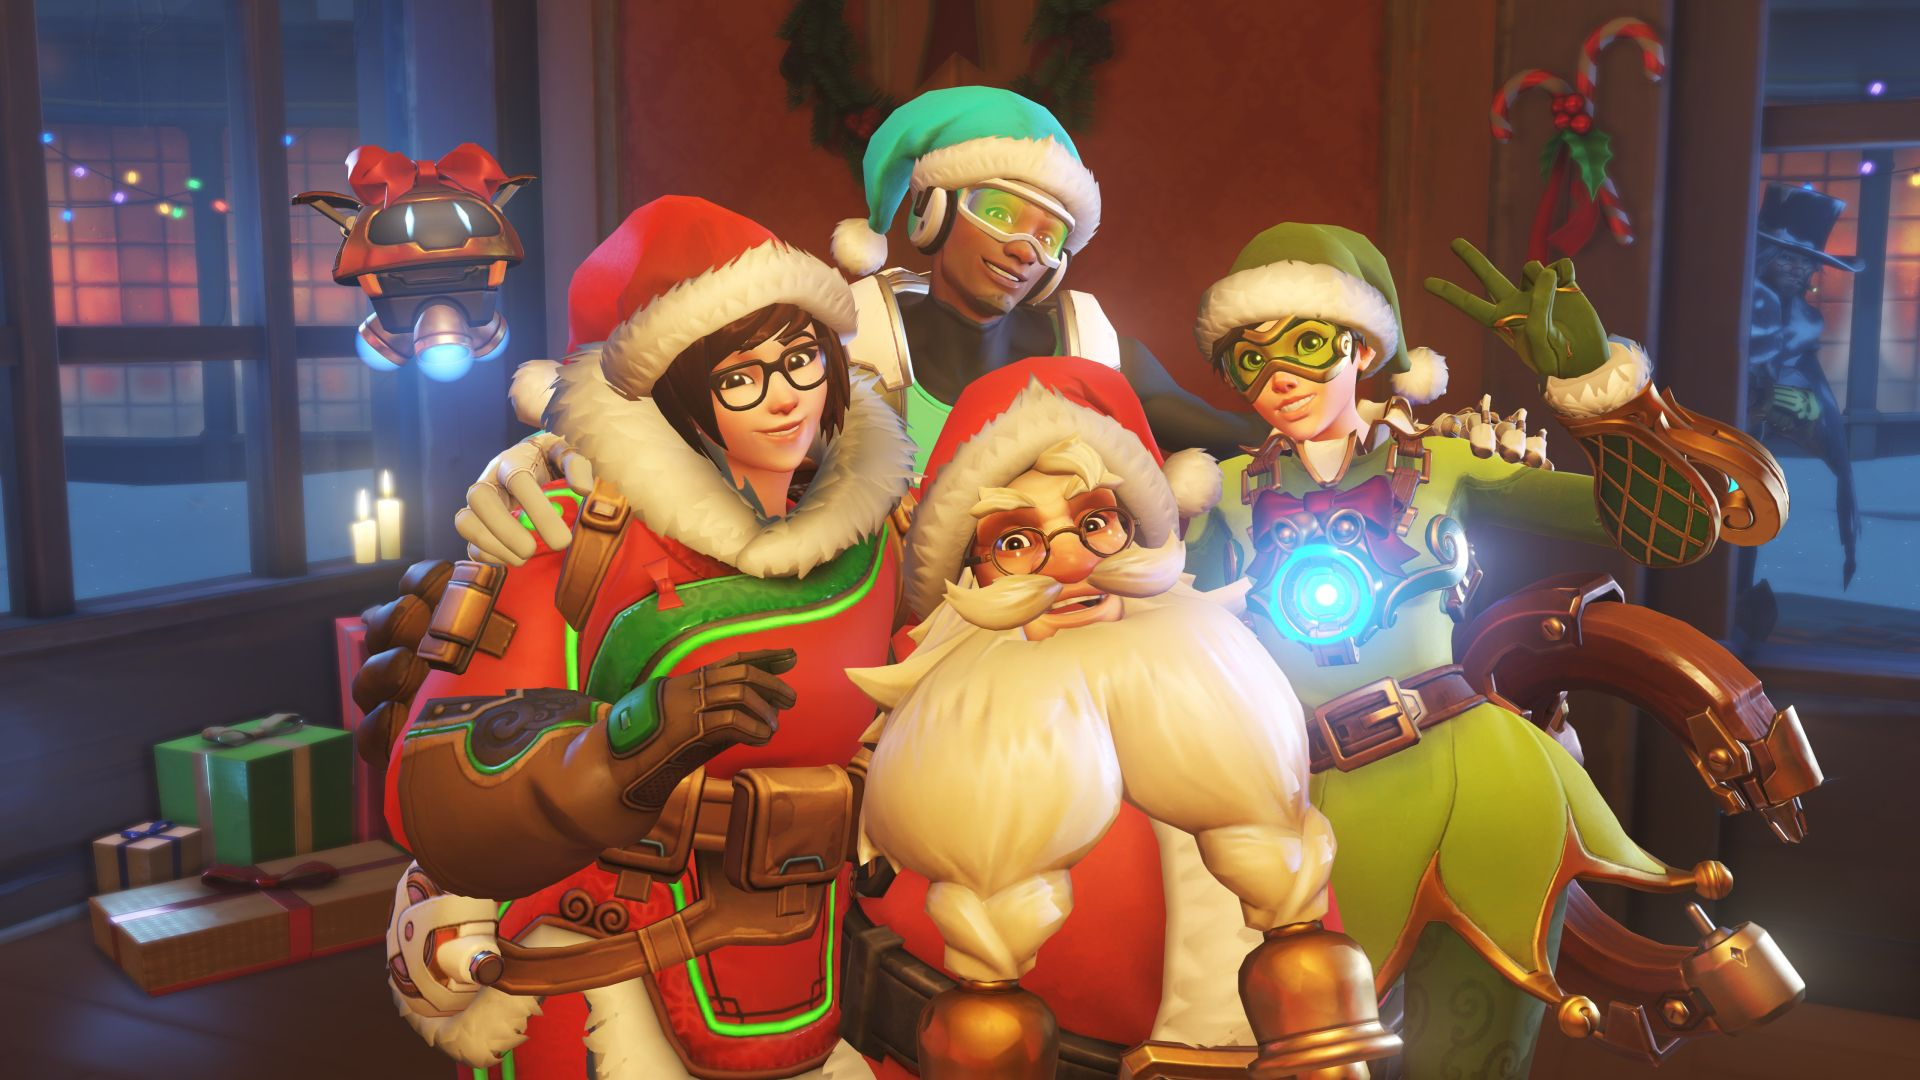 overwatch_winter_wonderland-28